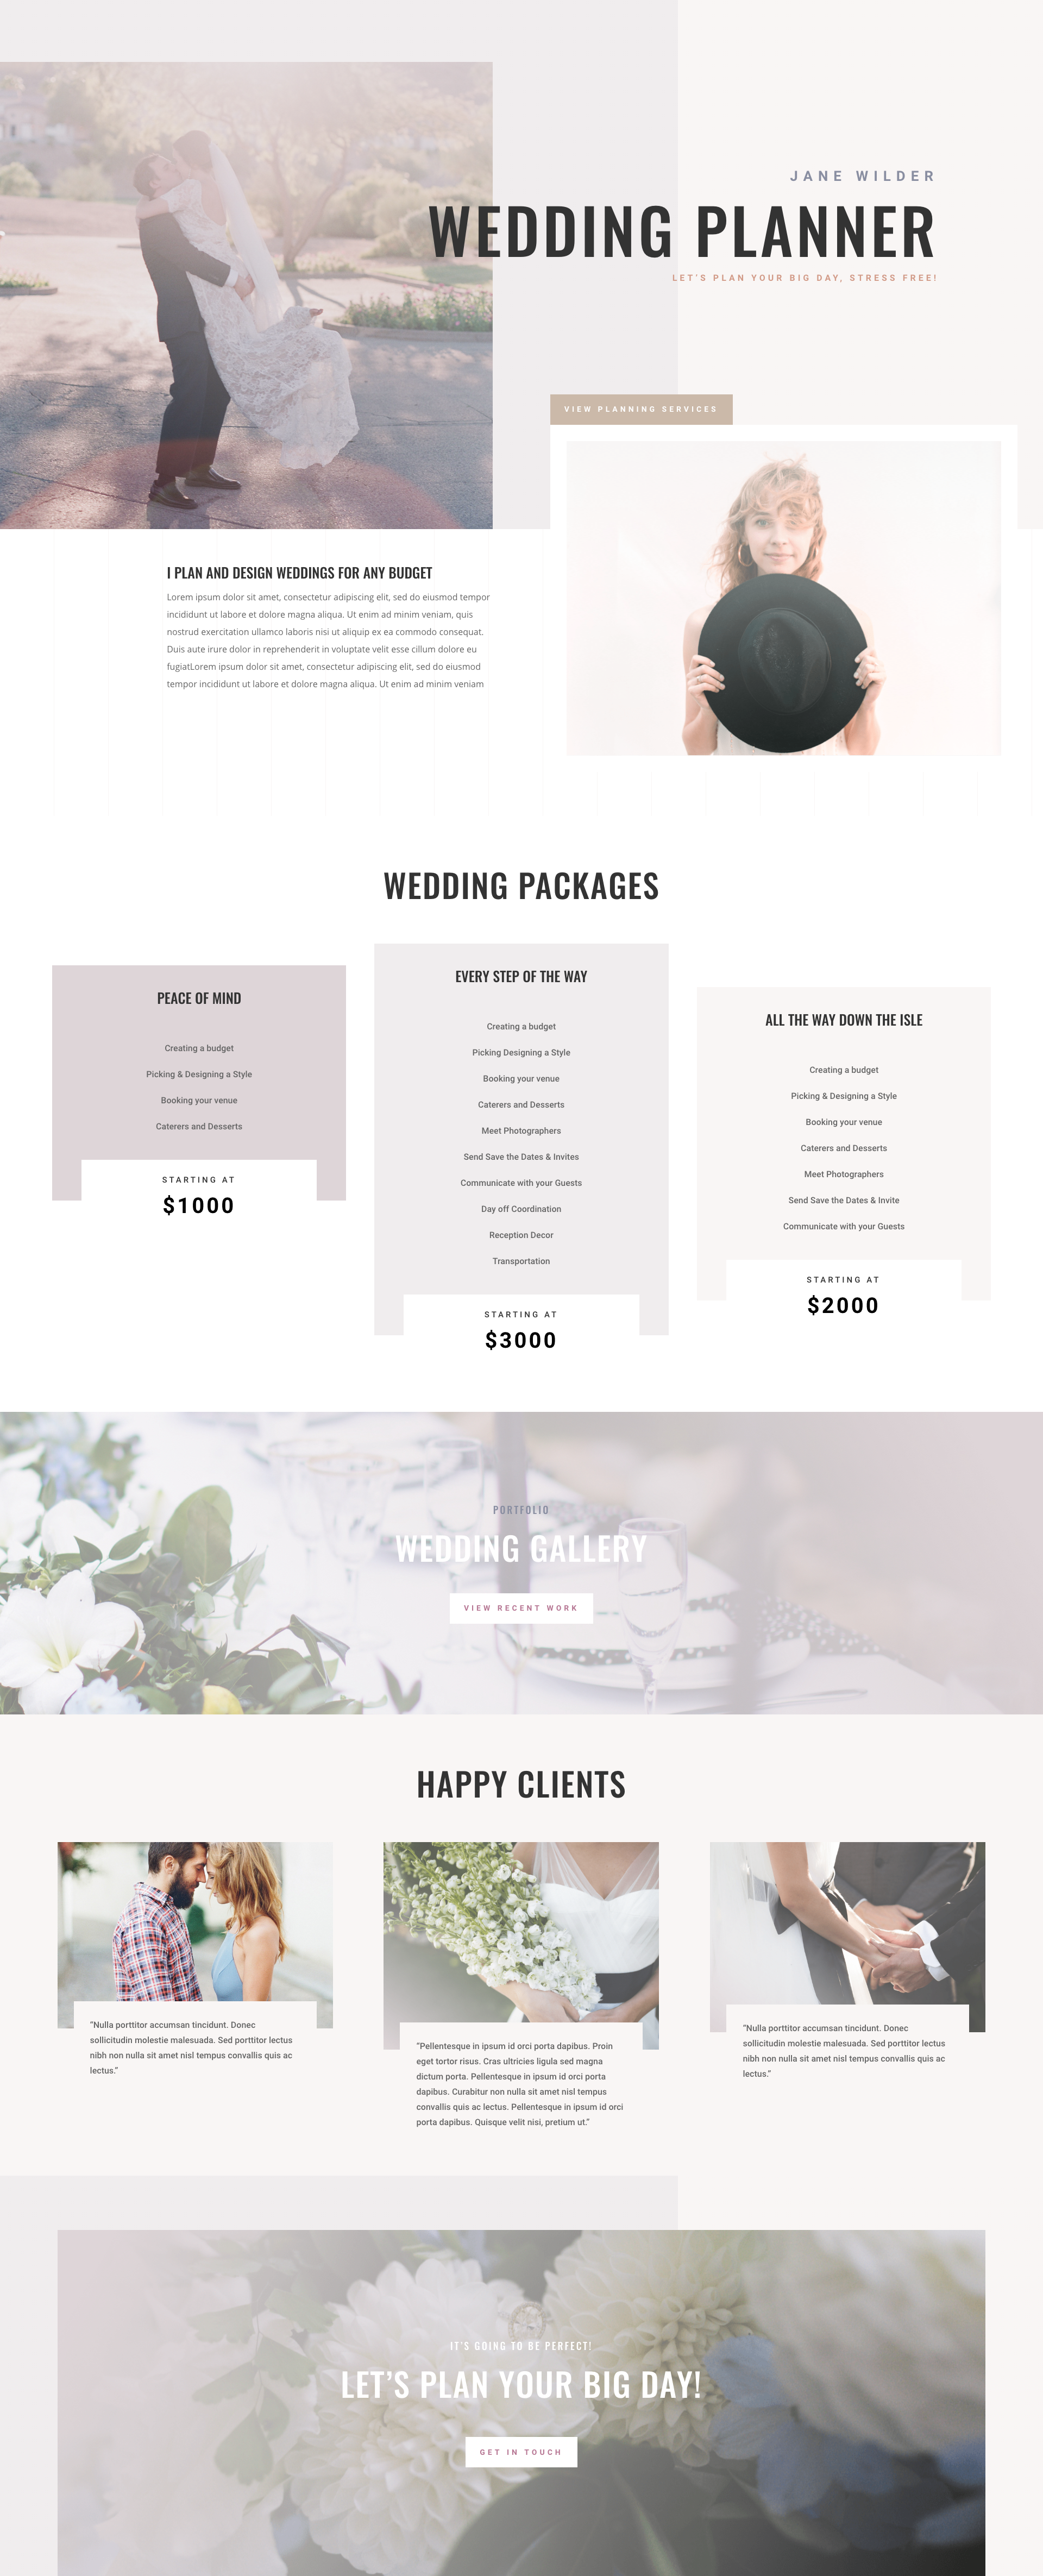 dribbble wedding planner home page png by ishtiaq khan parag